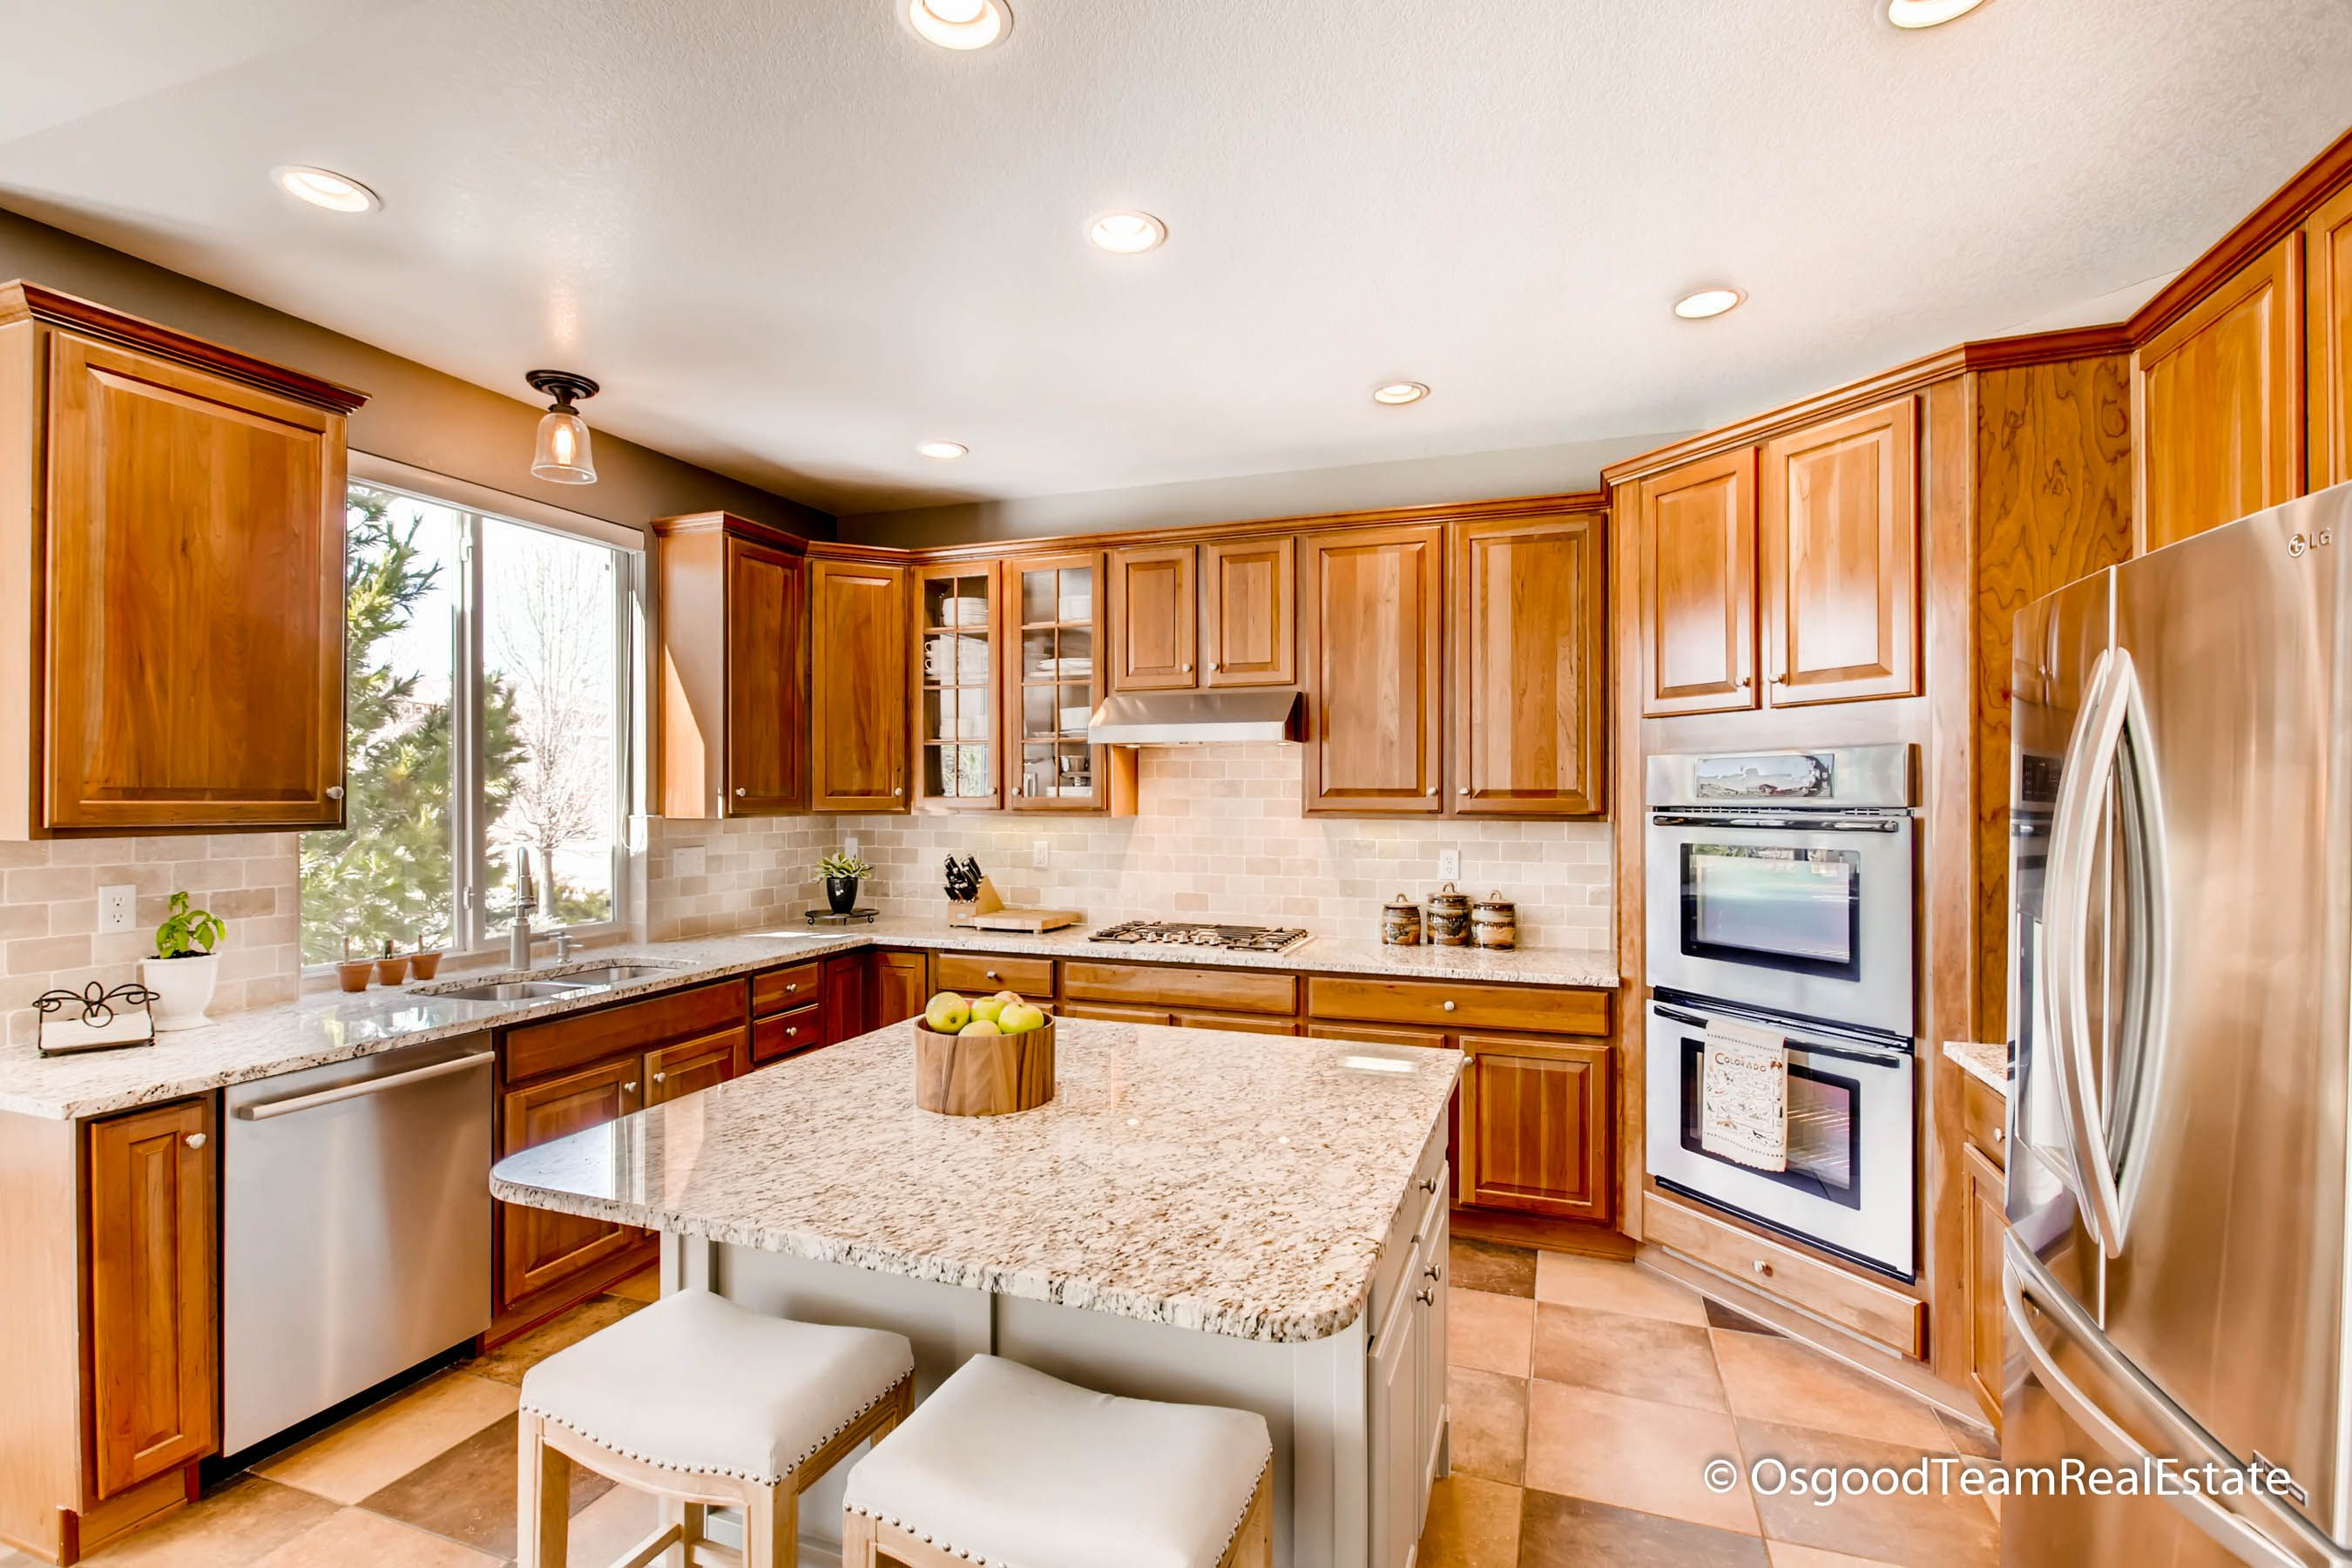 Stunning Kitchen With Lots Of Natural Light Cherry Cabinets, Granite